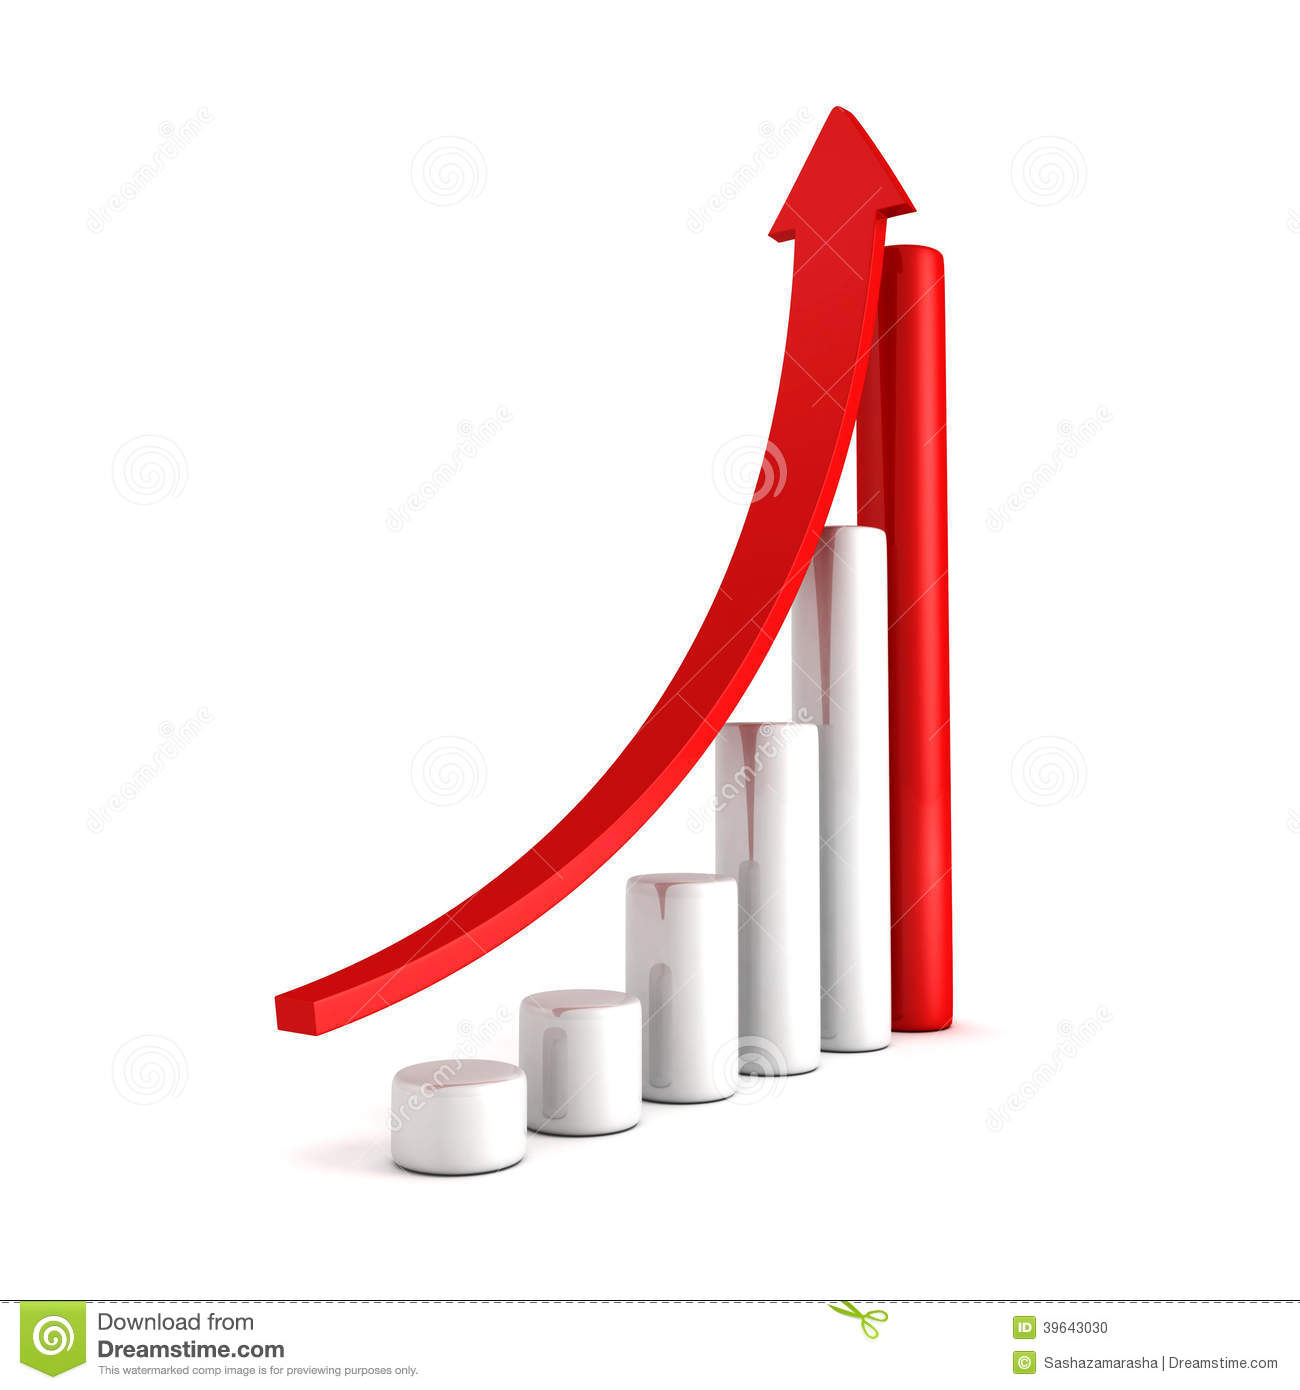 Red bar chart business growth with rising up arrow stock illustration